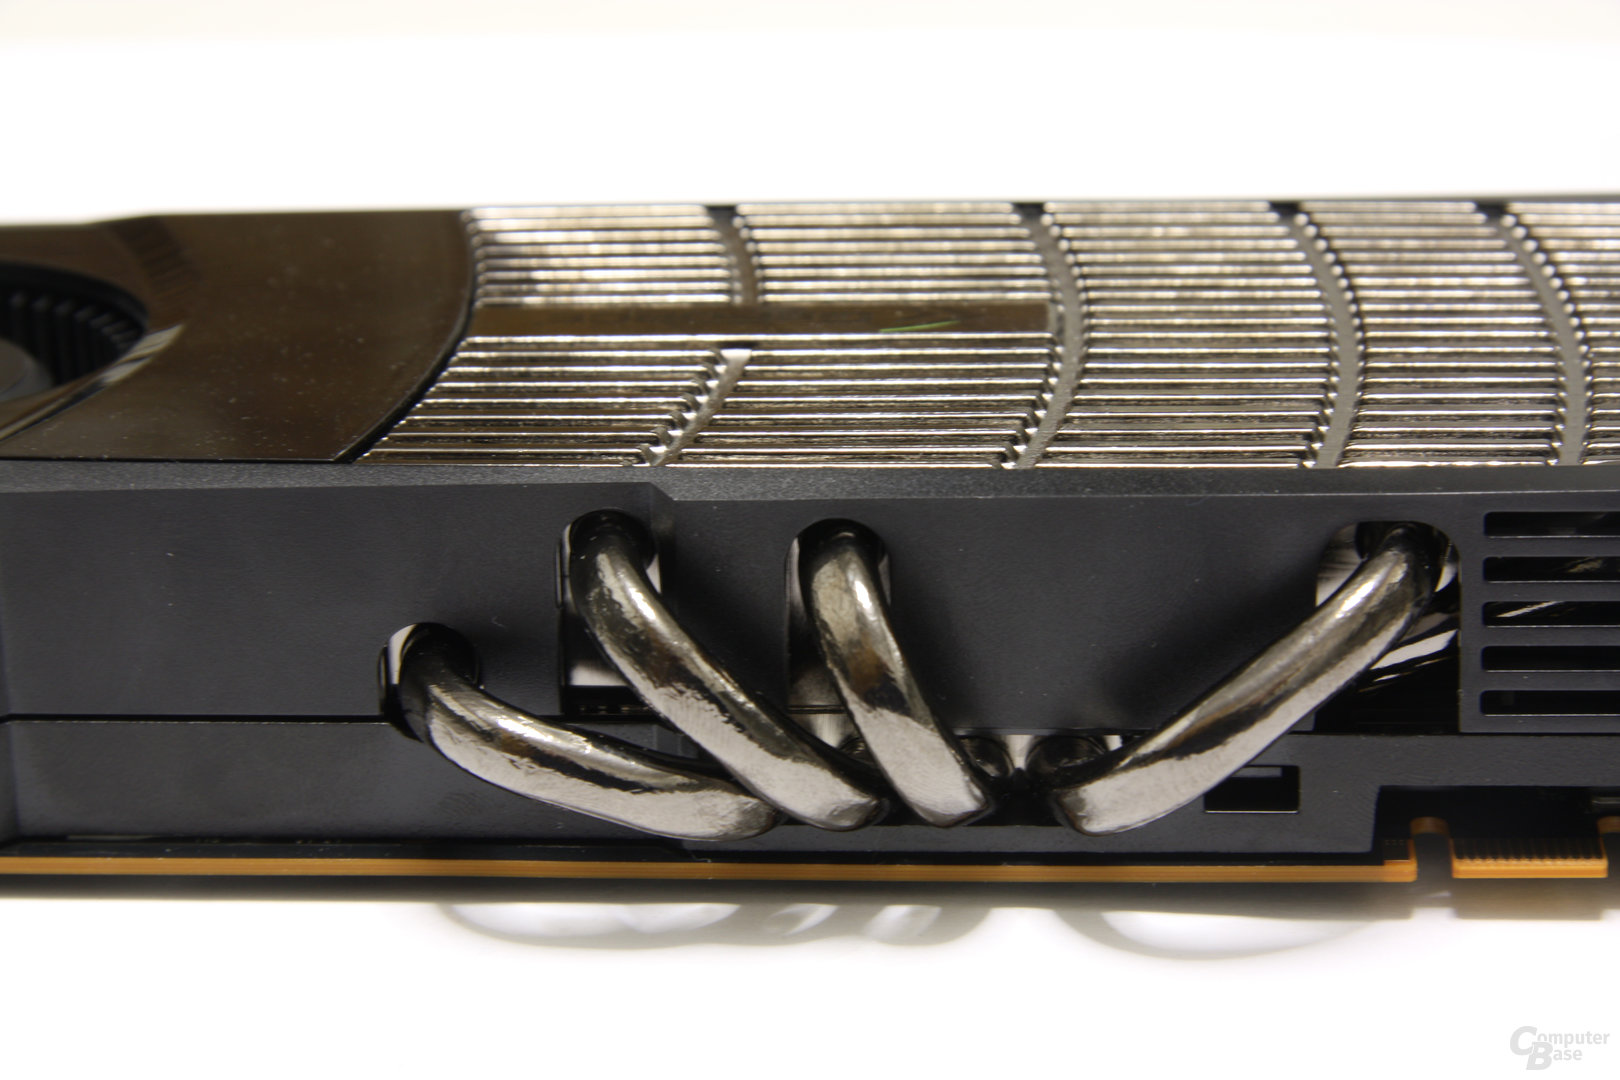 GeForce GTX 480 Heatpipes